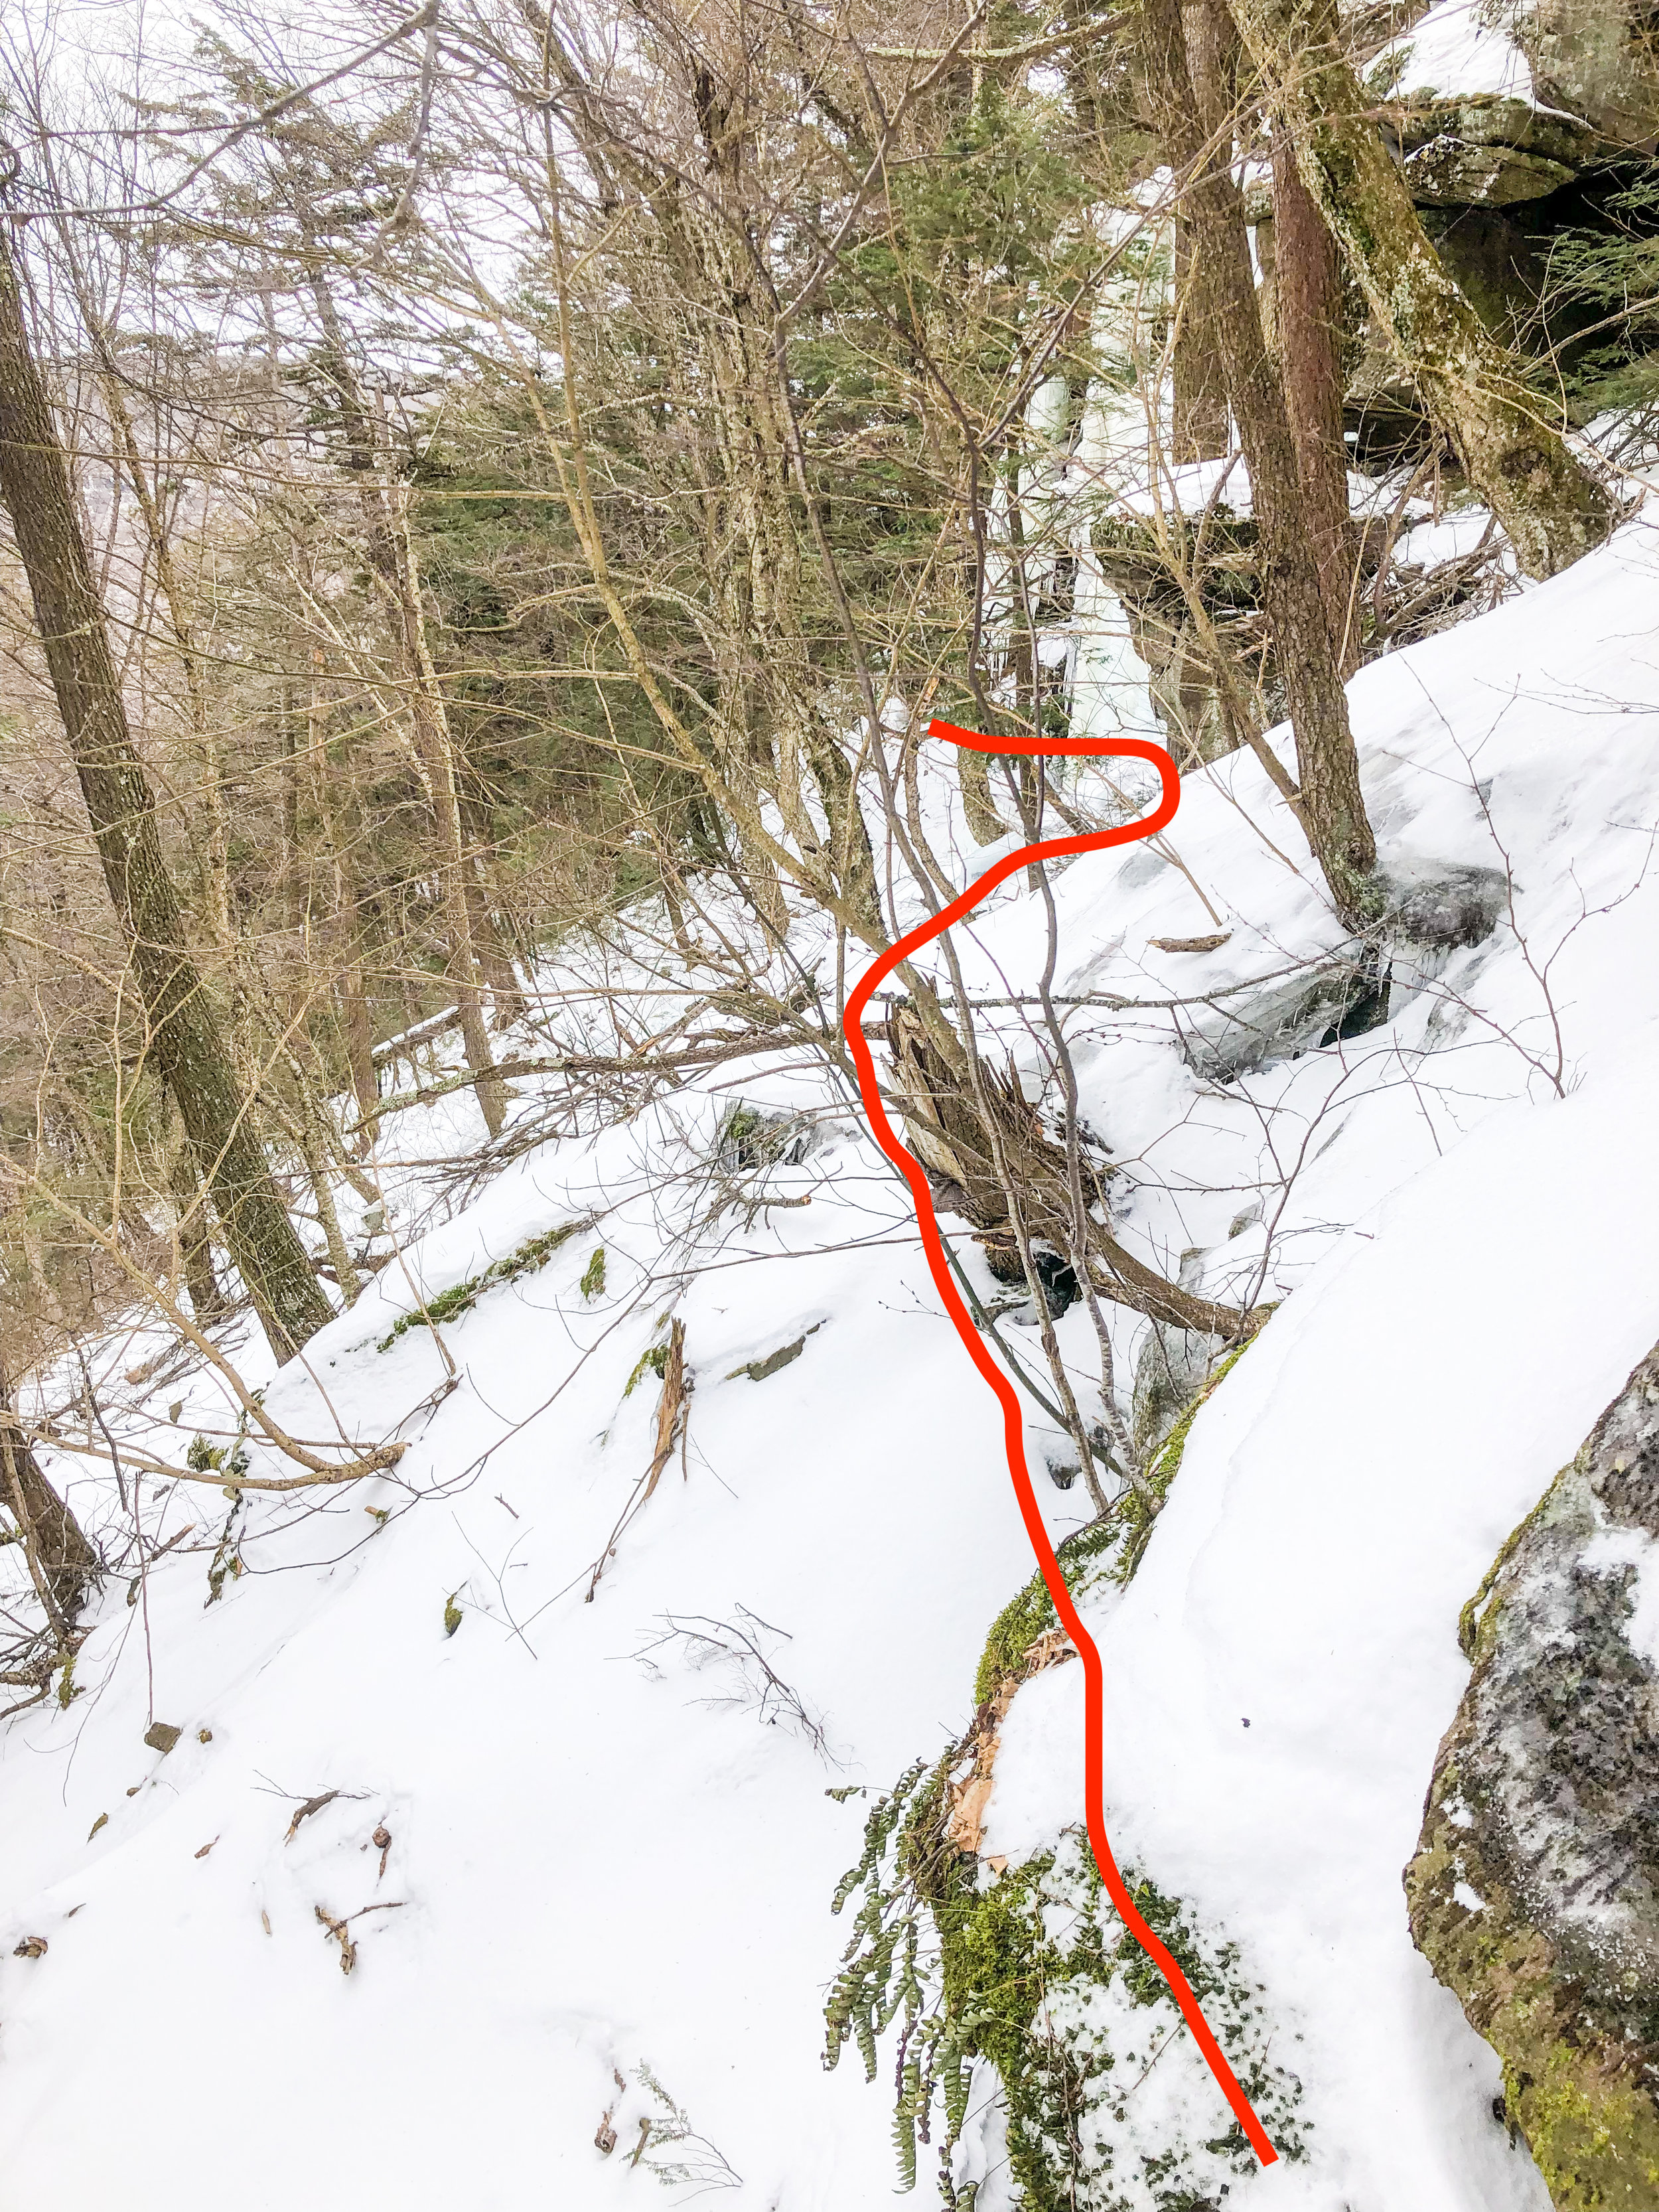 Route Guide Buttermilk Falls in the Catskills Ben Carlson BMF Kronos Furnace Industries DRY ICE Tools Descent.jpg